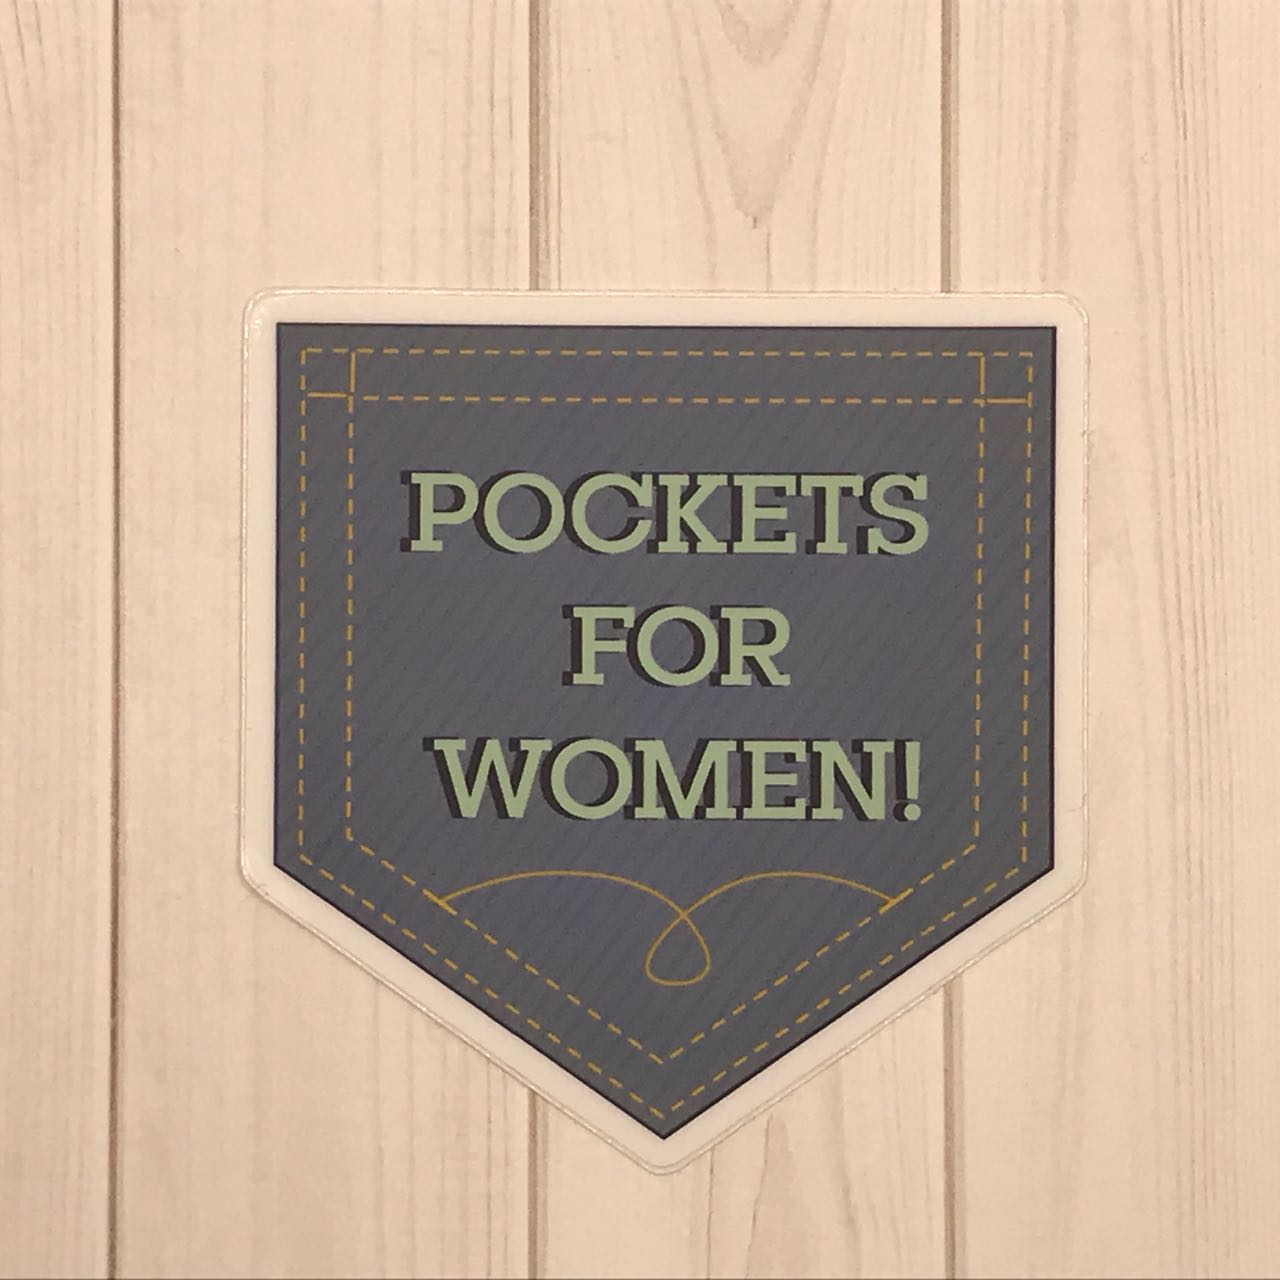 Pockets for Women! Vinyl Decal